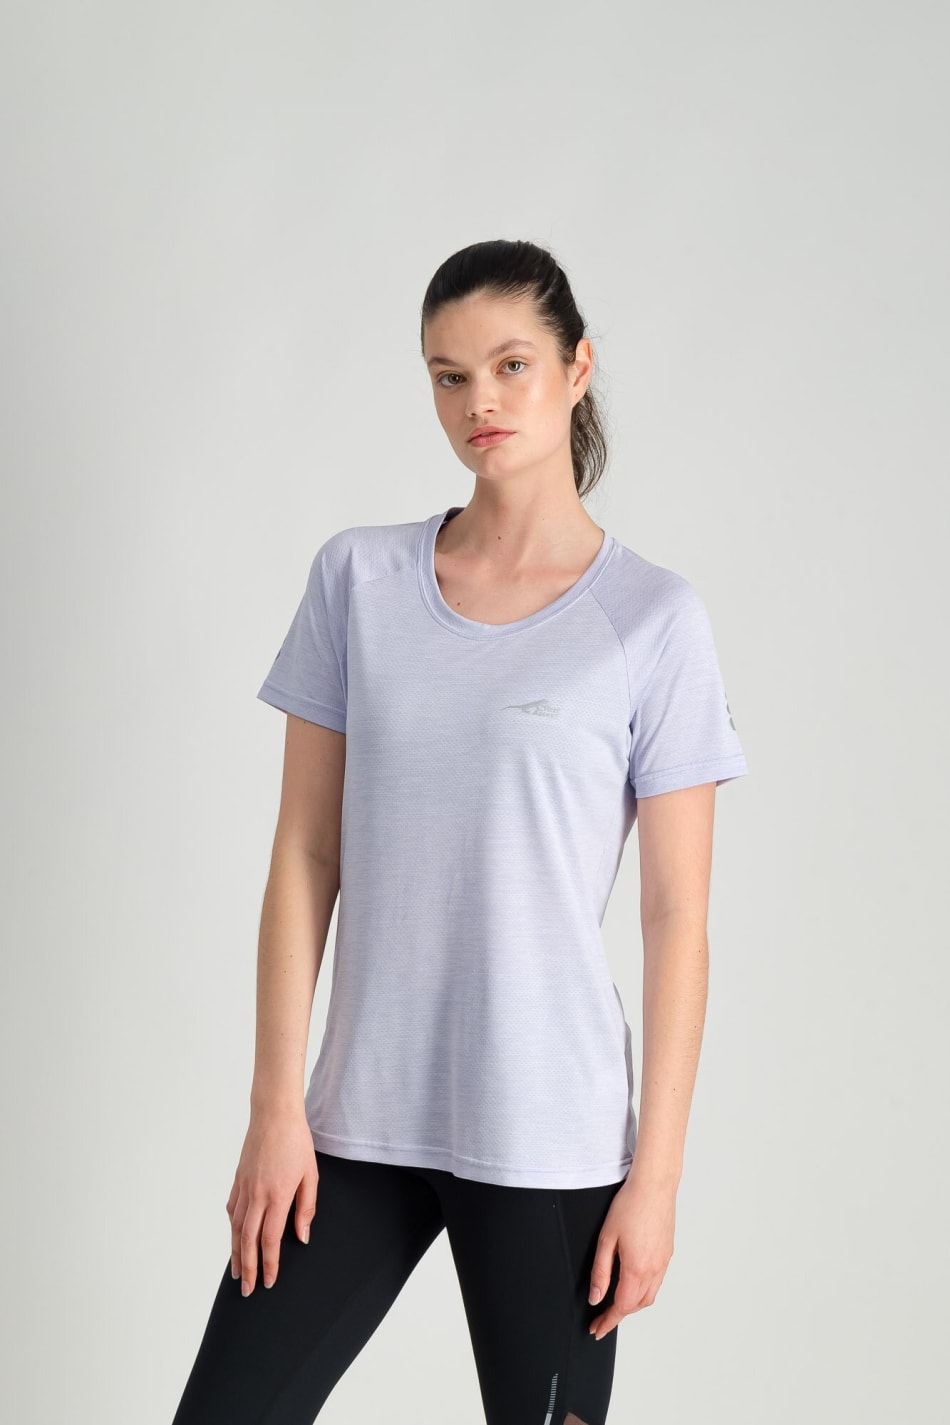 First Ascent Women's Corefit Run Tee, product, variation 3